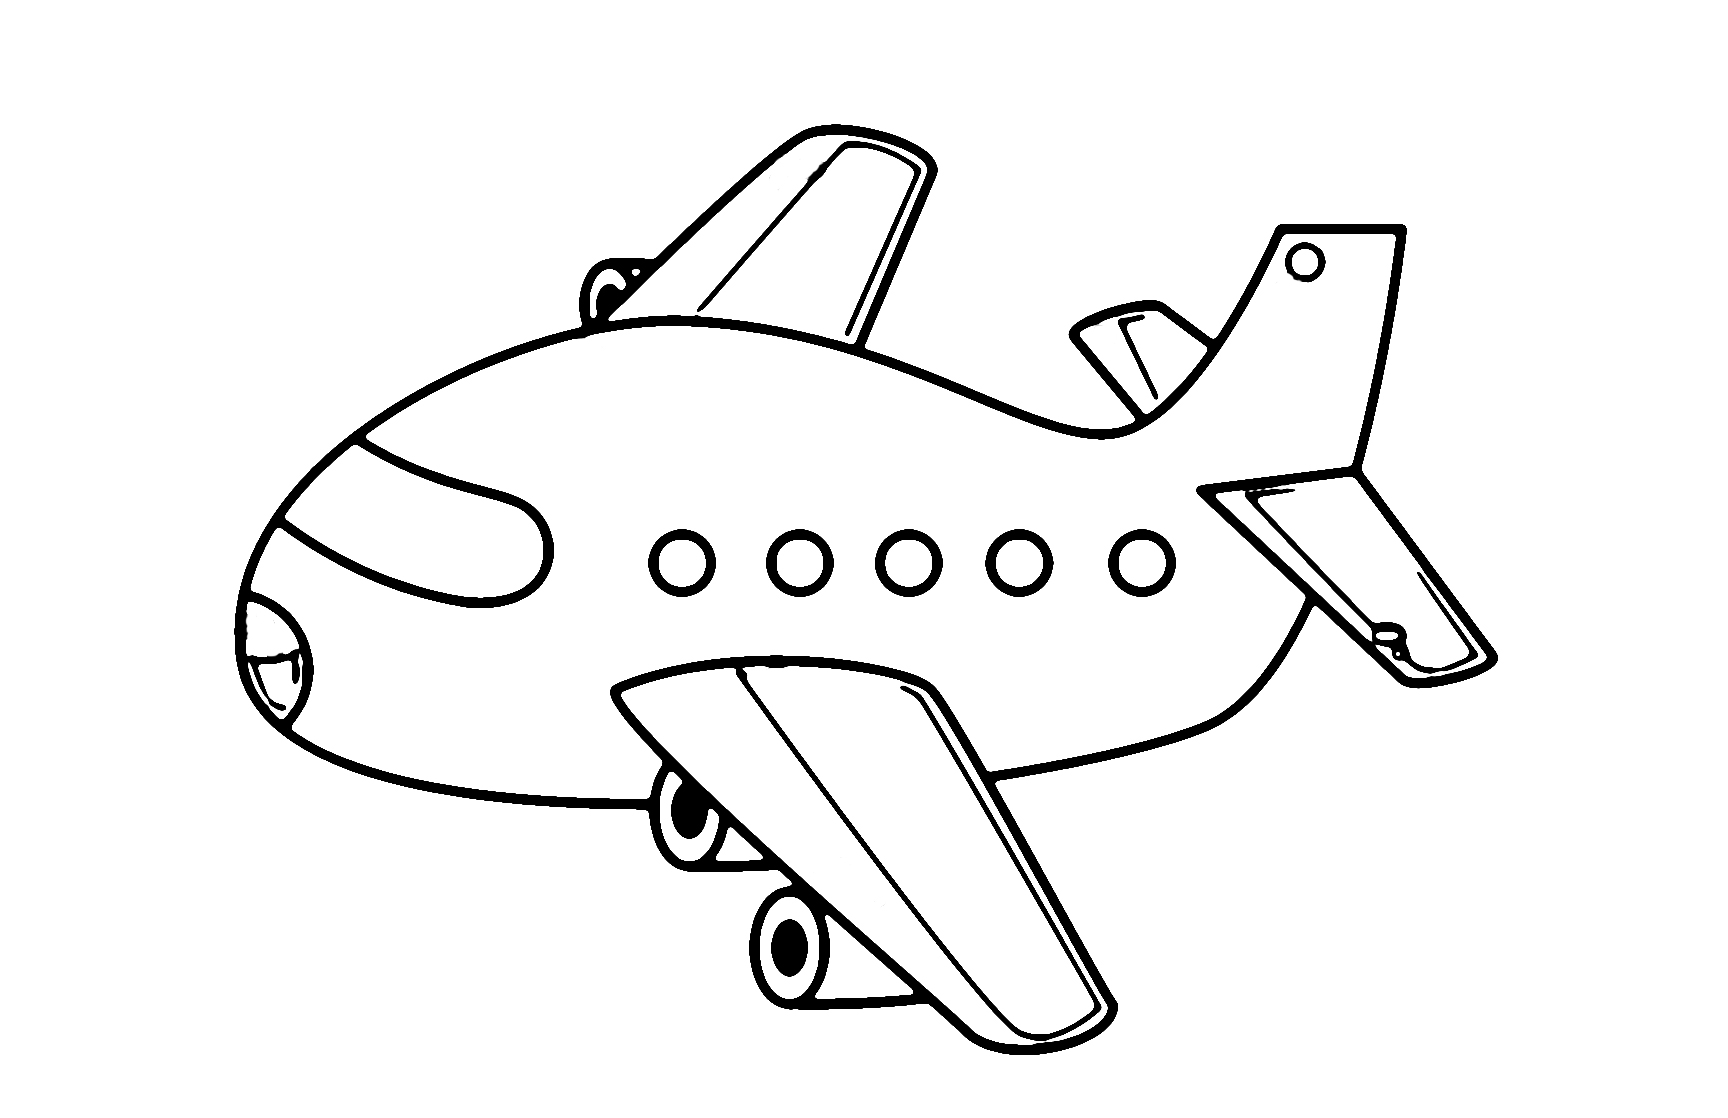 airplane pictures to colour free printable airplane coloring pages for kids pictures colour airplane to